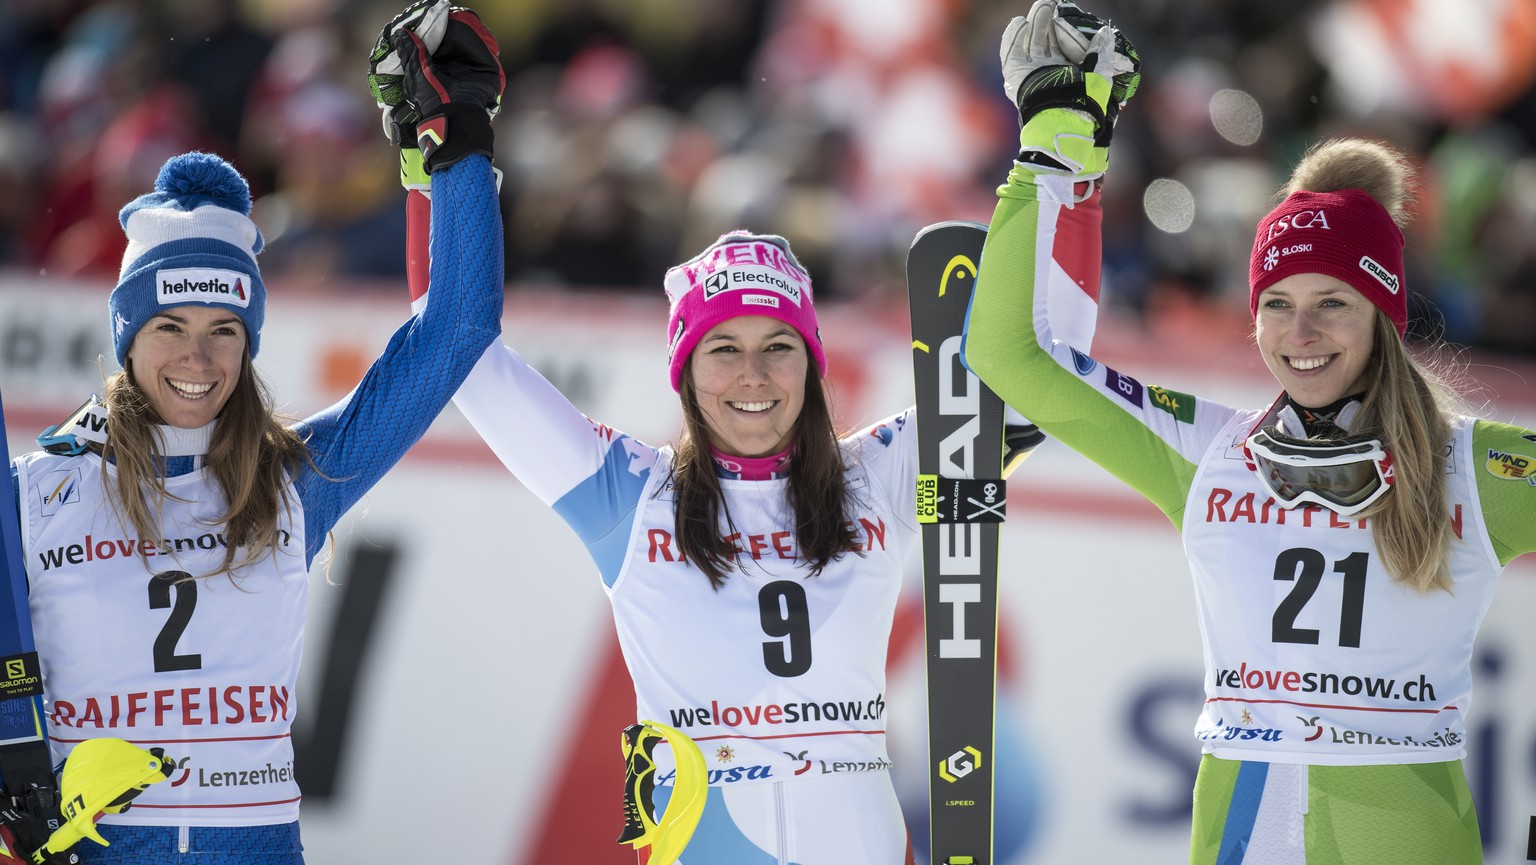 Winner Wendy Holdener of Switzerland, center, poses with second placed Marta Bassino of Italy, left, and third placed Ana Bucik of Slovenia, right, during the podium ceremony after the Slalom run of the women's Alpine Combined race at the Alpine Skiing FIS Ski World Cup in Lenzerheide, Switzerland, Friday, January 26, 2018. (KEYSTONE/Jean-Christophe Bott)